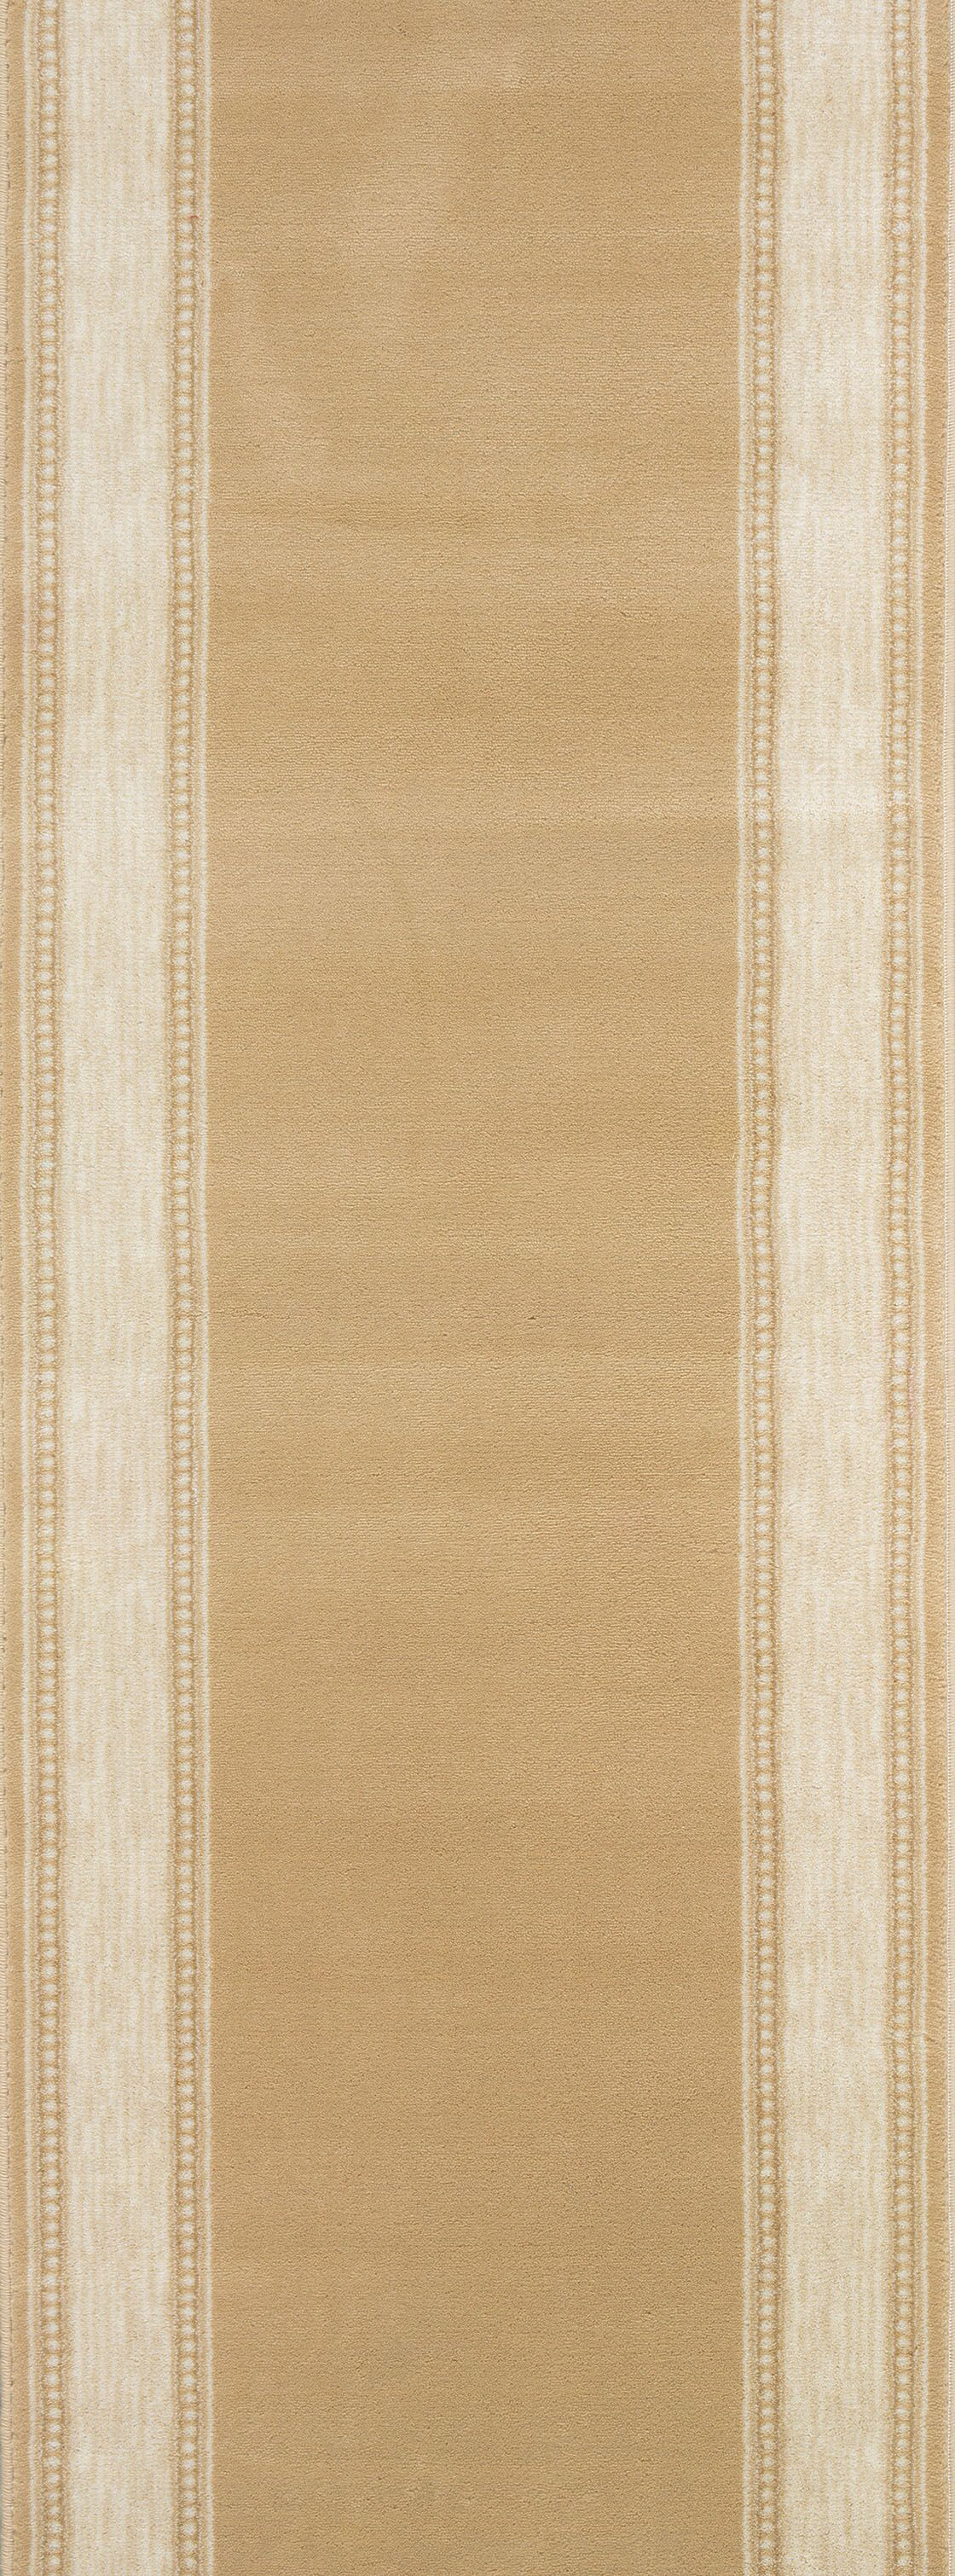 Songadh Tan Area Rug Rug Size: Runner 2'7